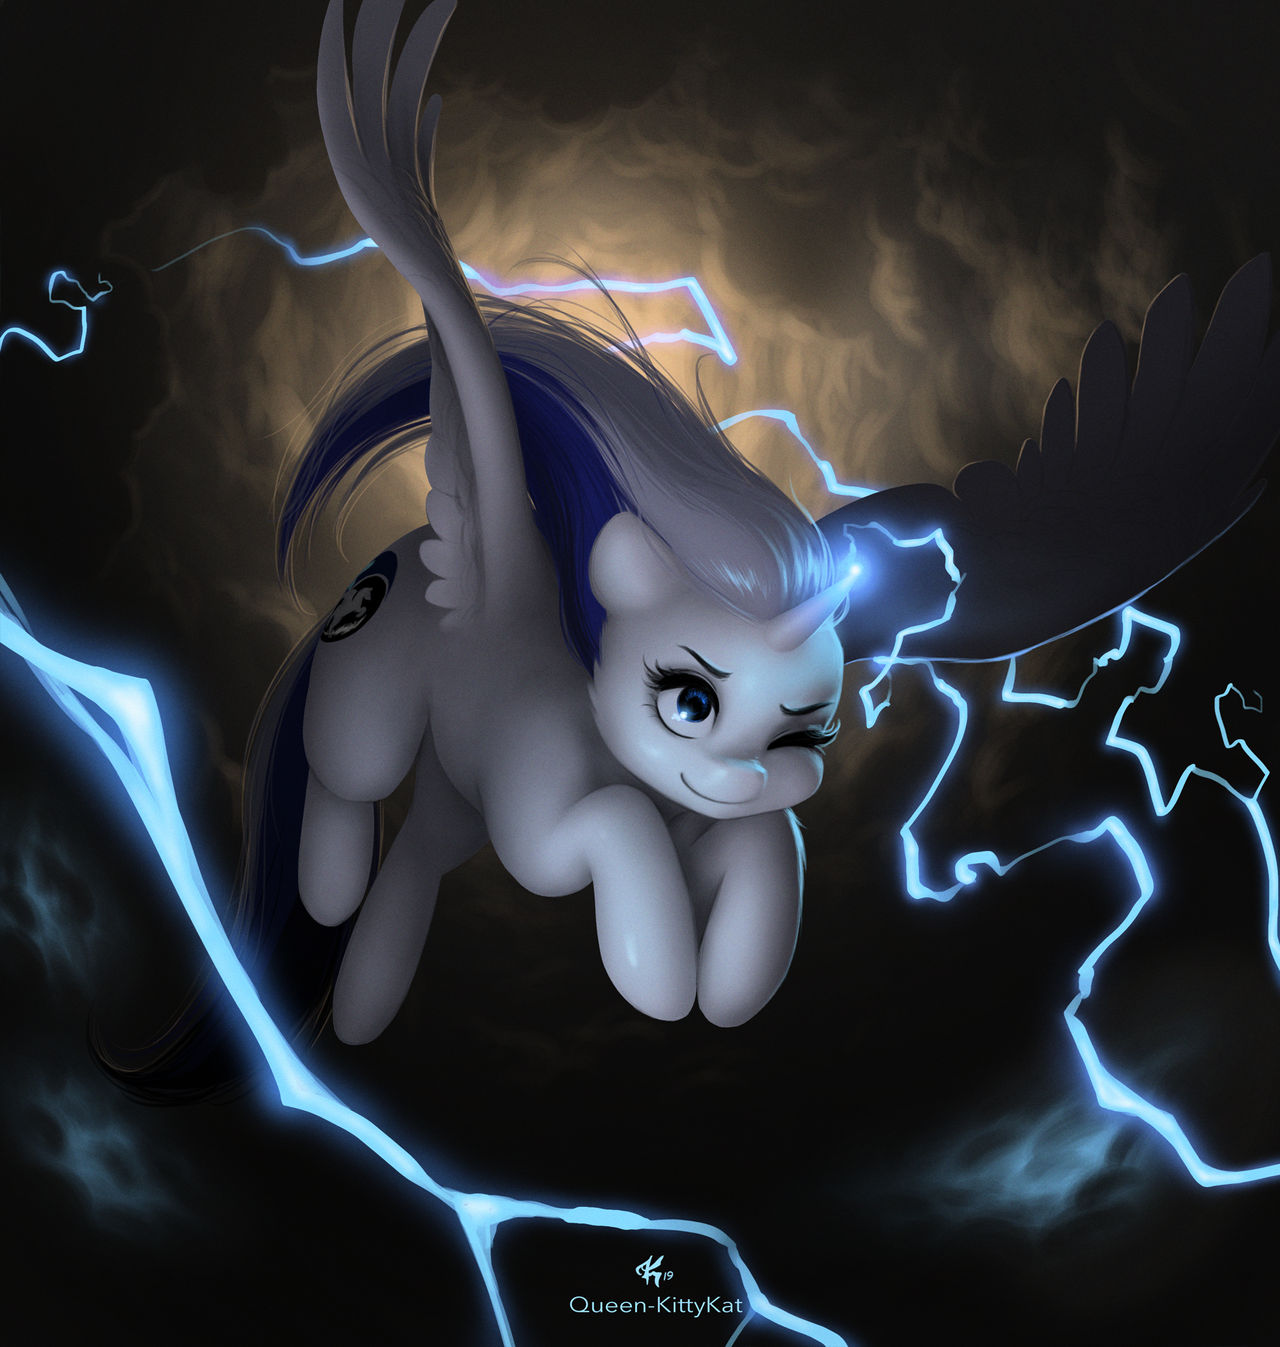 Thunder Storm by Queen-KittyKat